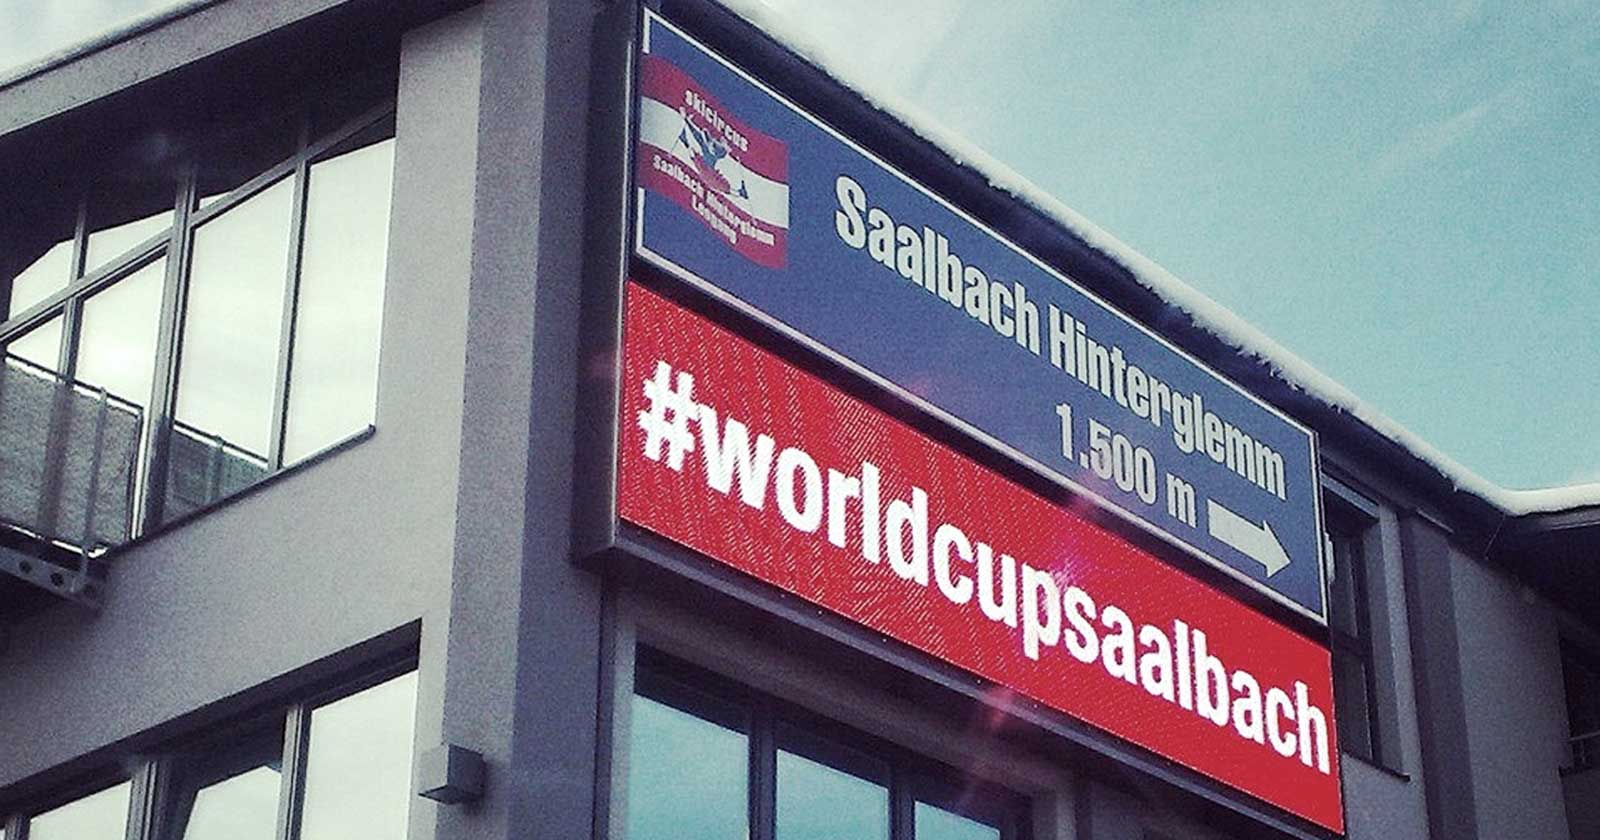 The photo shows a modern grey building with lots of windows. On one side, a large banner advertises the hashtag #WorldCupSaalbach.